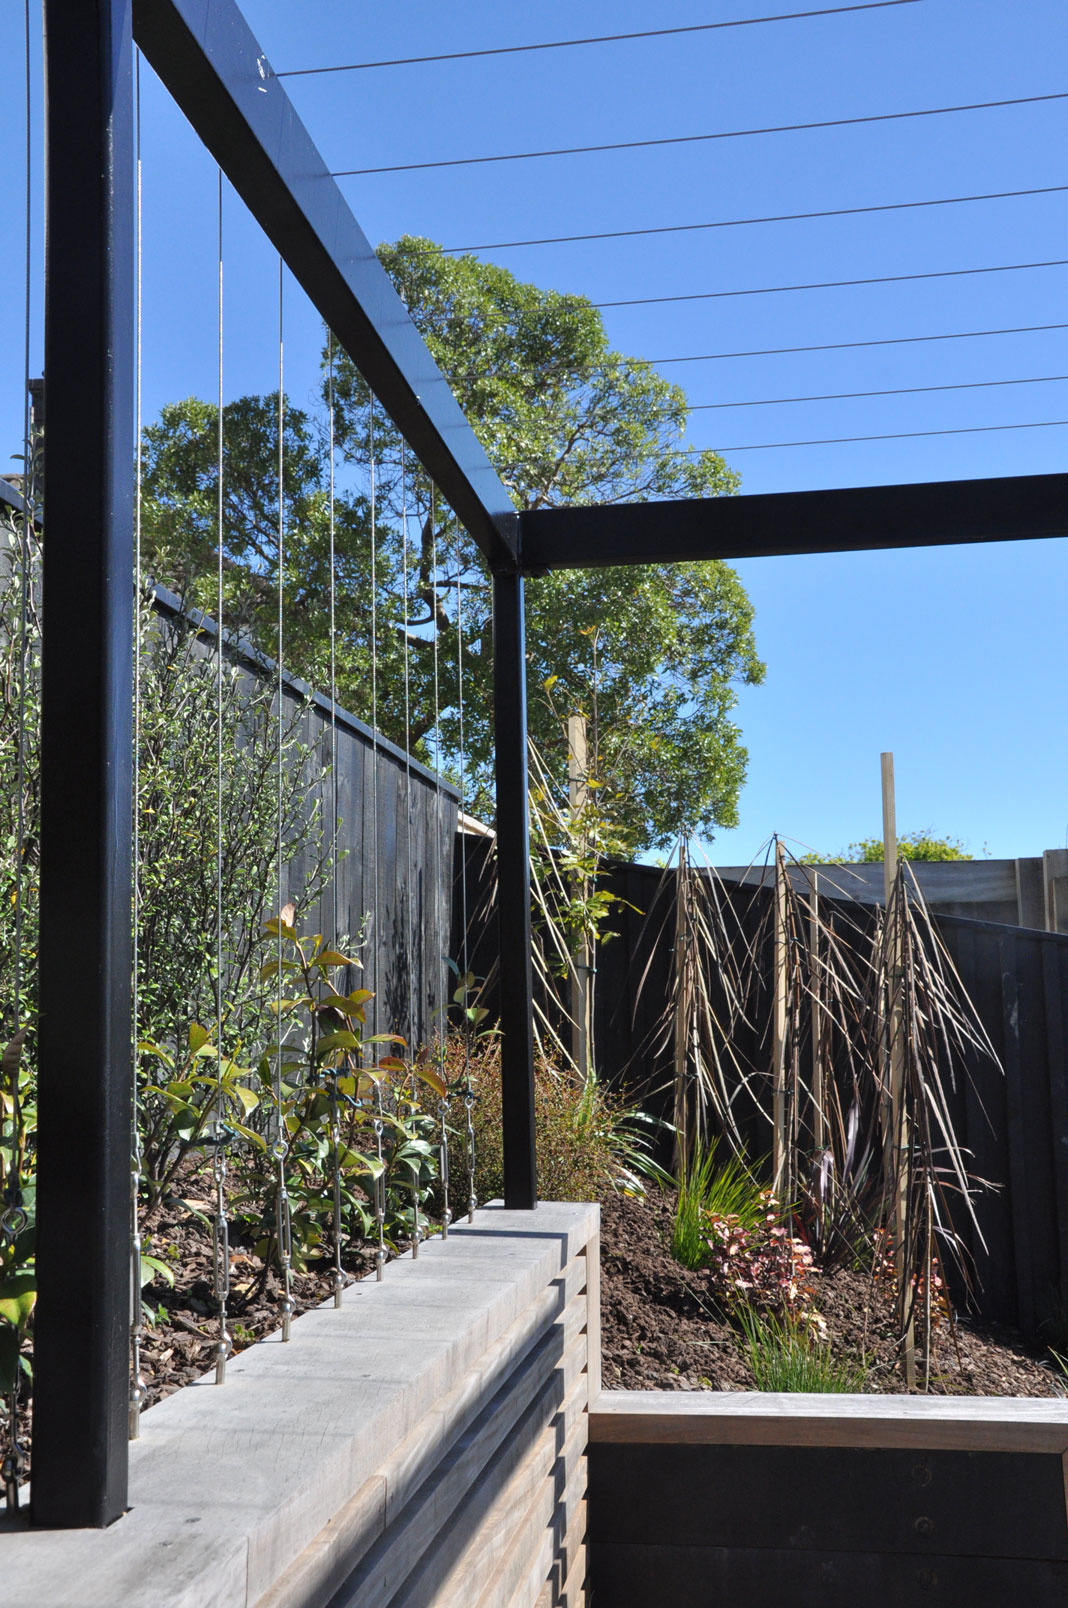 Pergola with vertical wires climbers